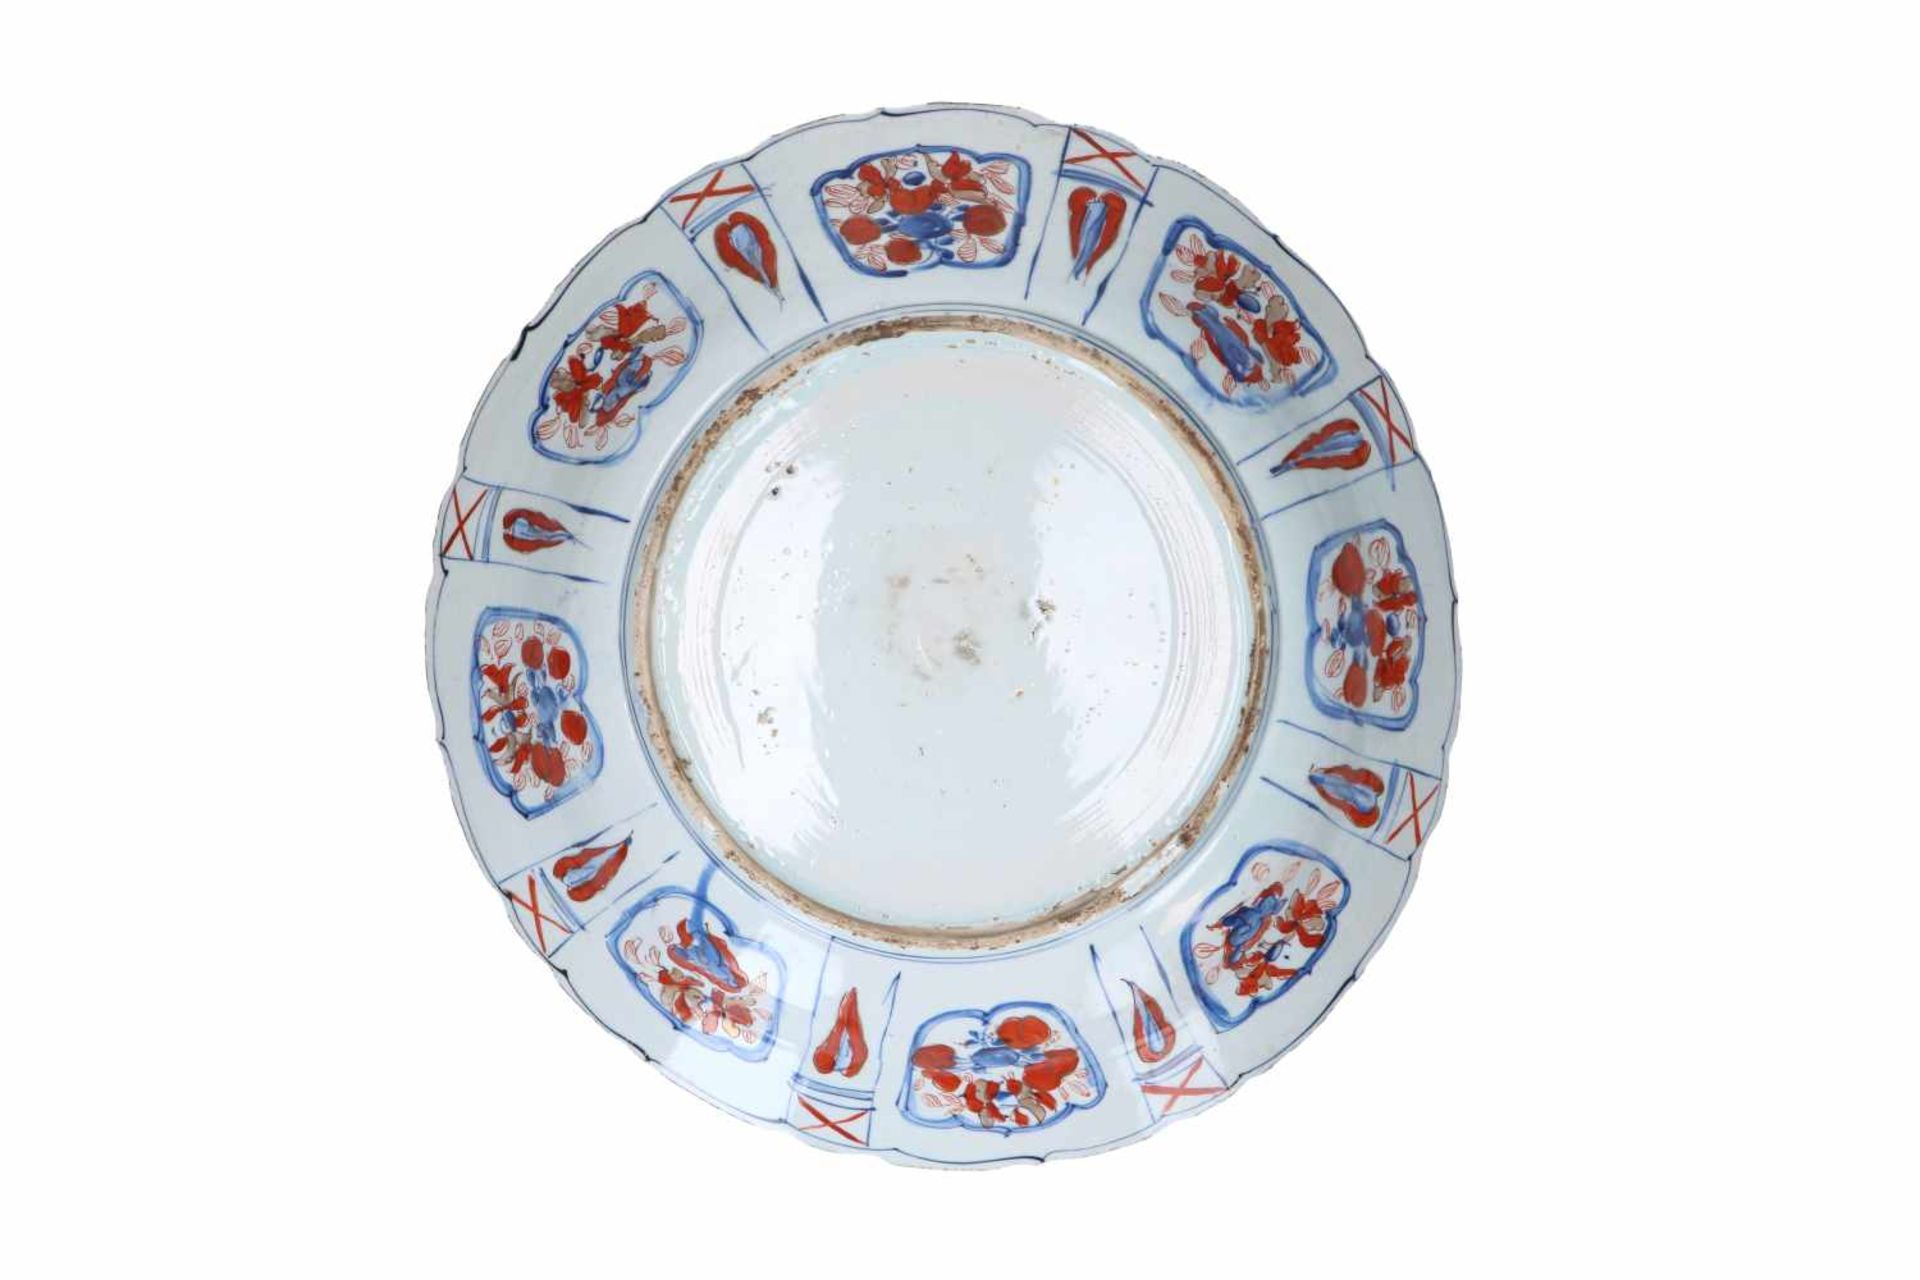 A blue and overglaze red porcelain deep charger with scalloped rim, decorated with flowers, fruits - Bild 2 aus 3